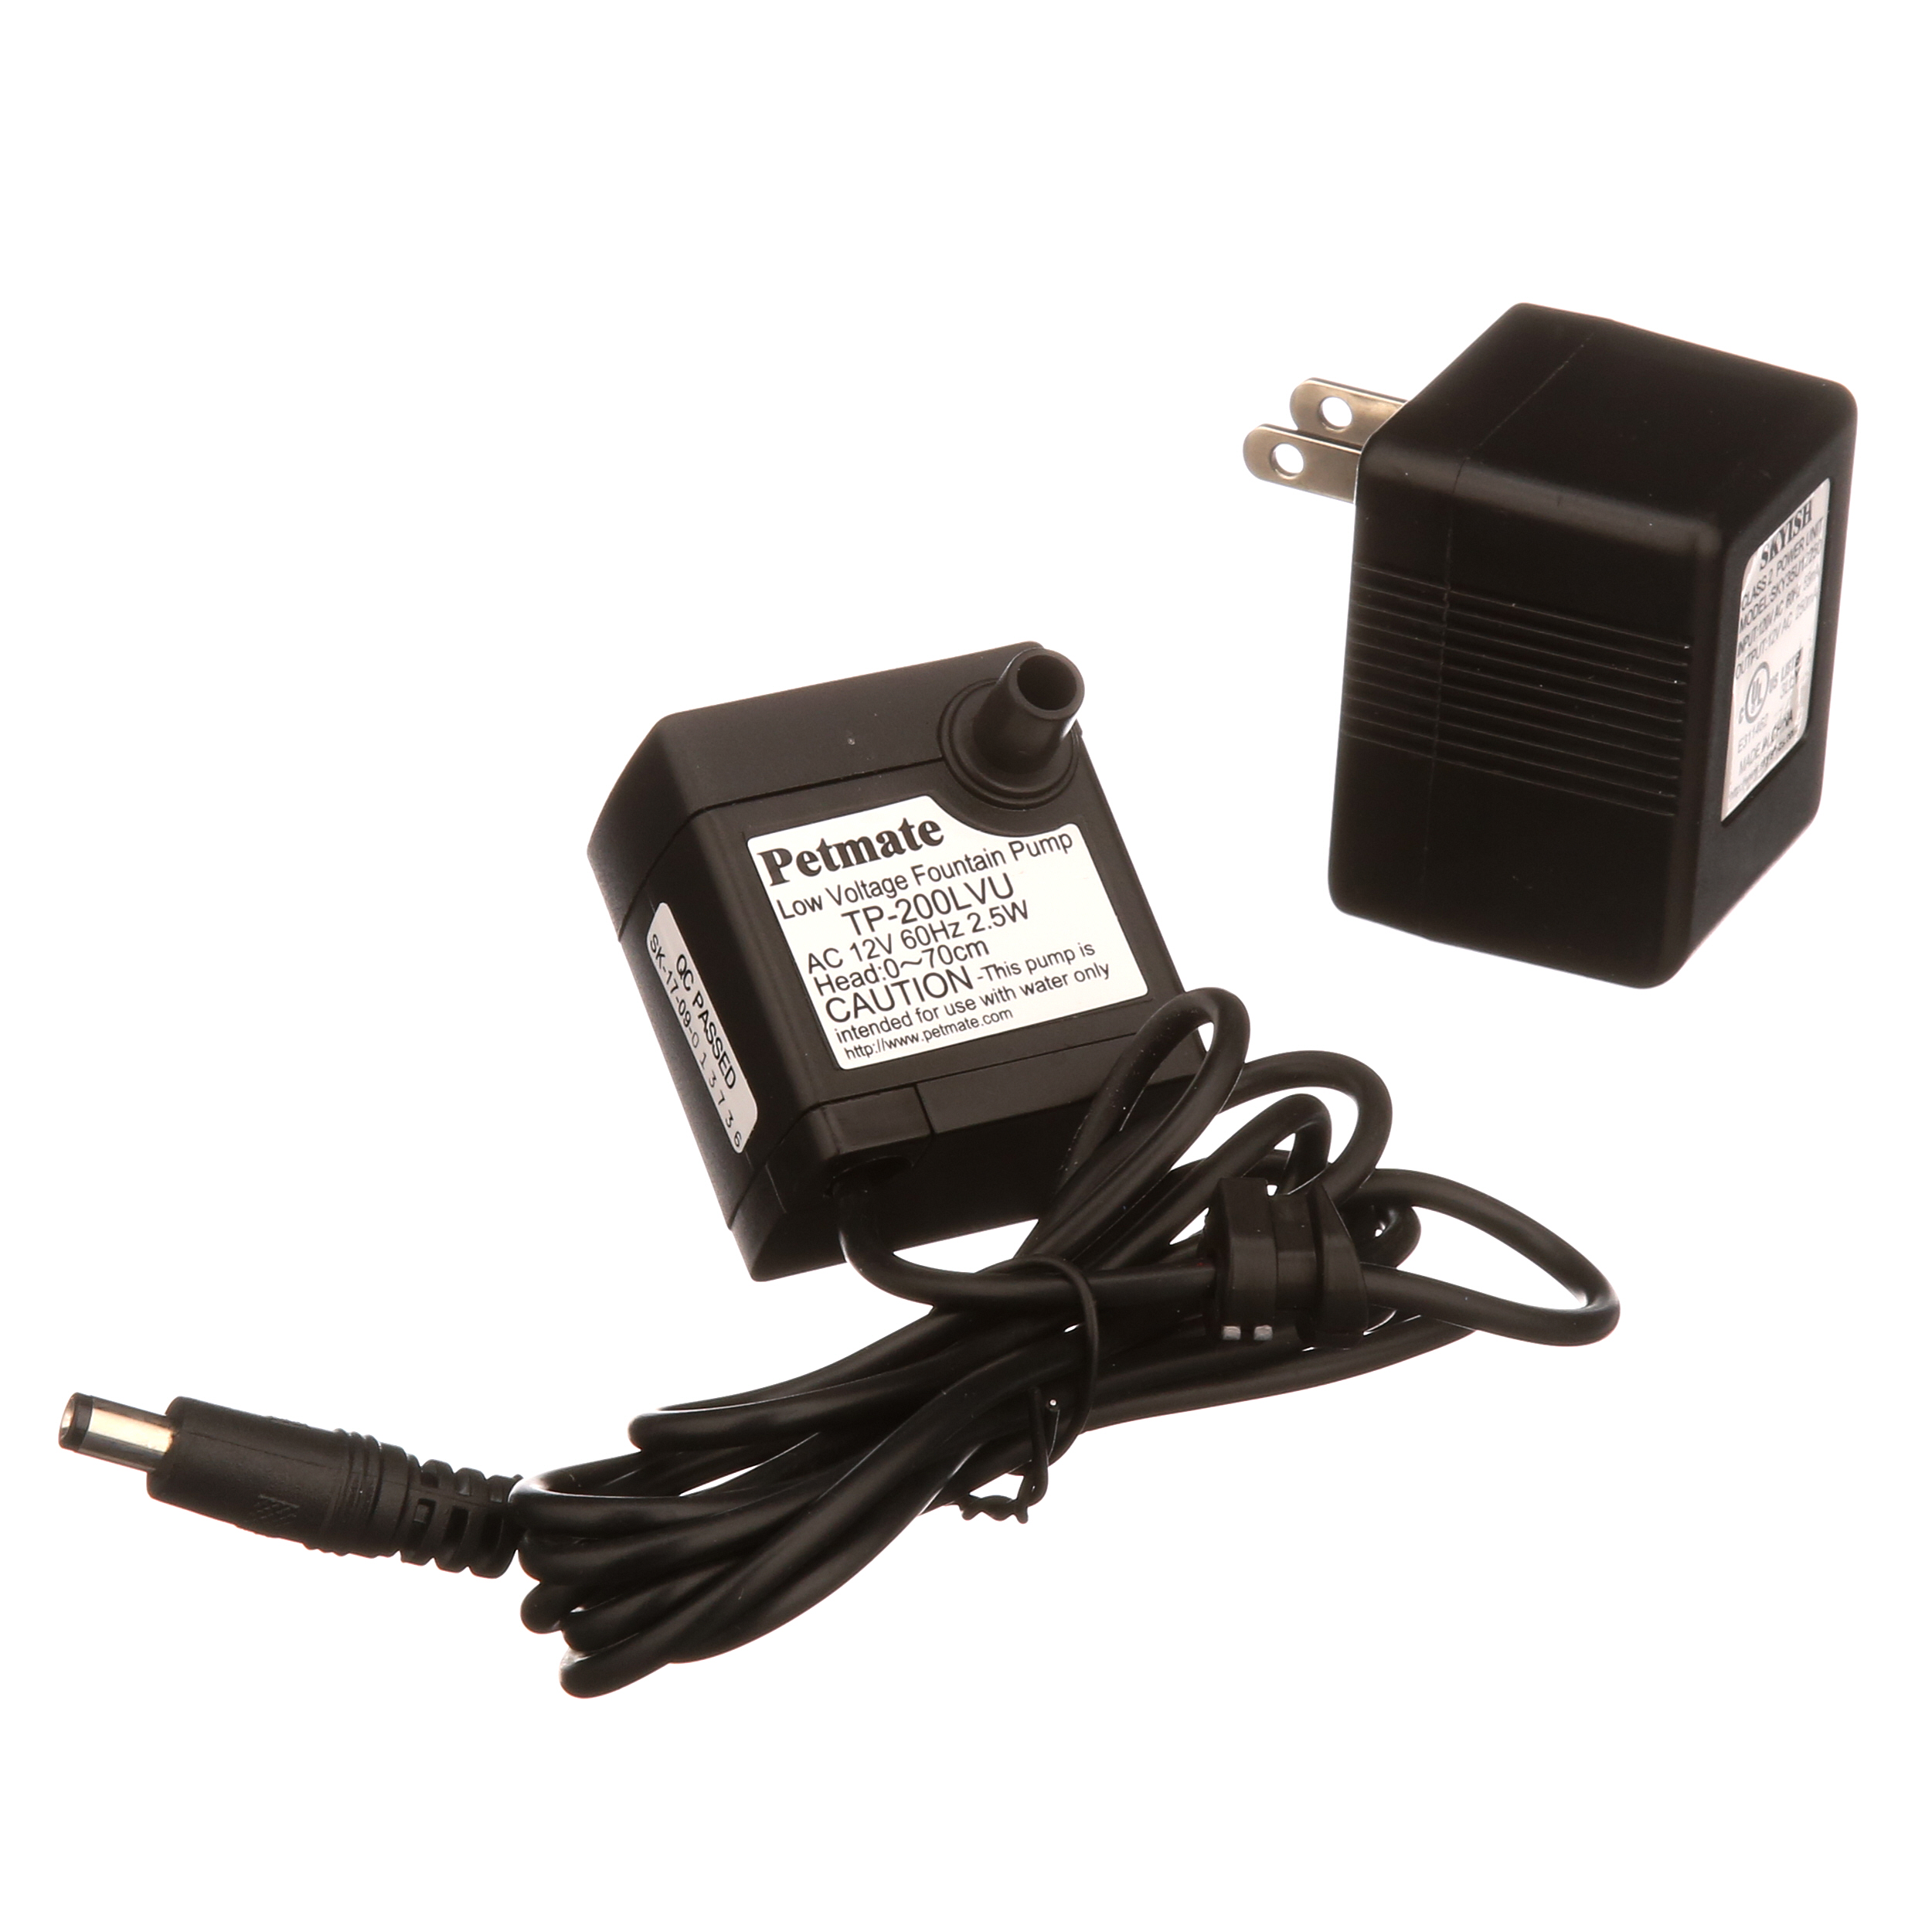 Pet Supplies Petmate Fresh Flow Deluxe Replacement Pump 120v Ac Adapter And Cord Included